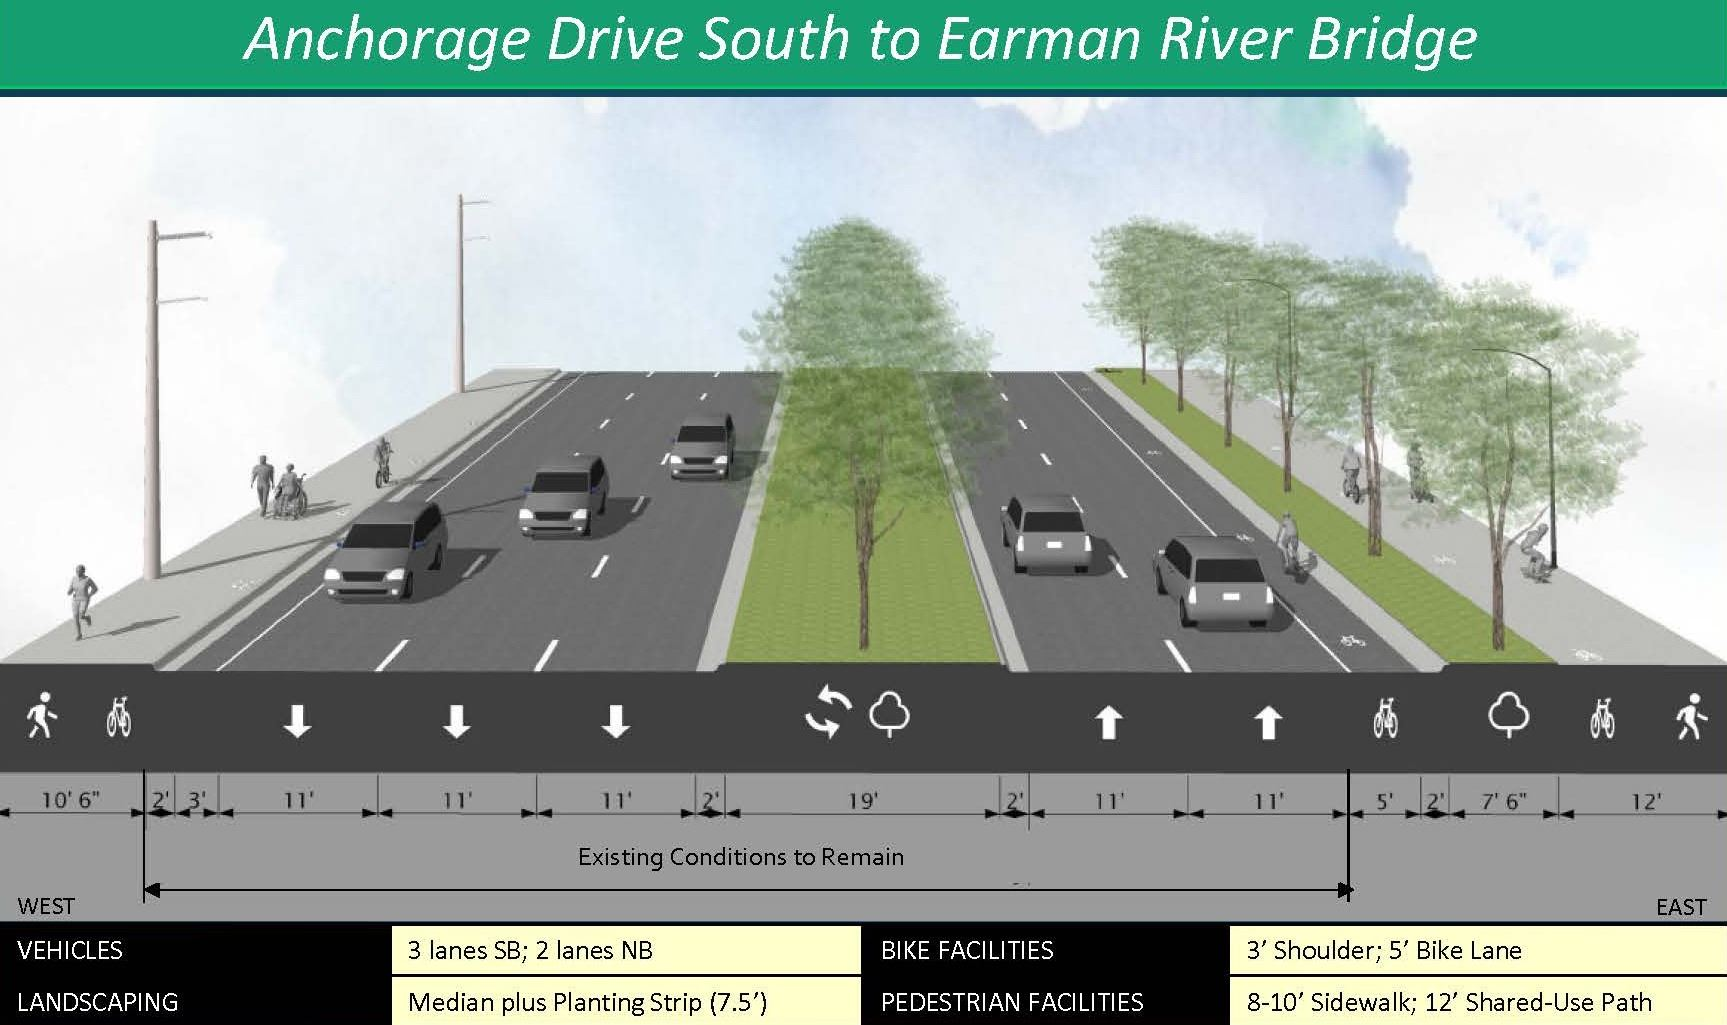 Cross section rendering of Earman Bridge to Anchorage Drive South